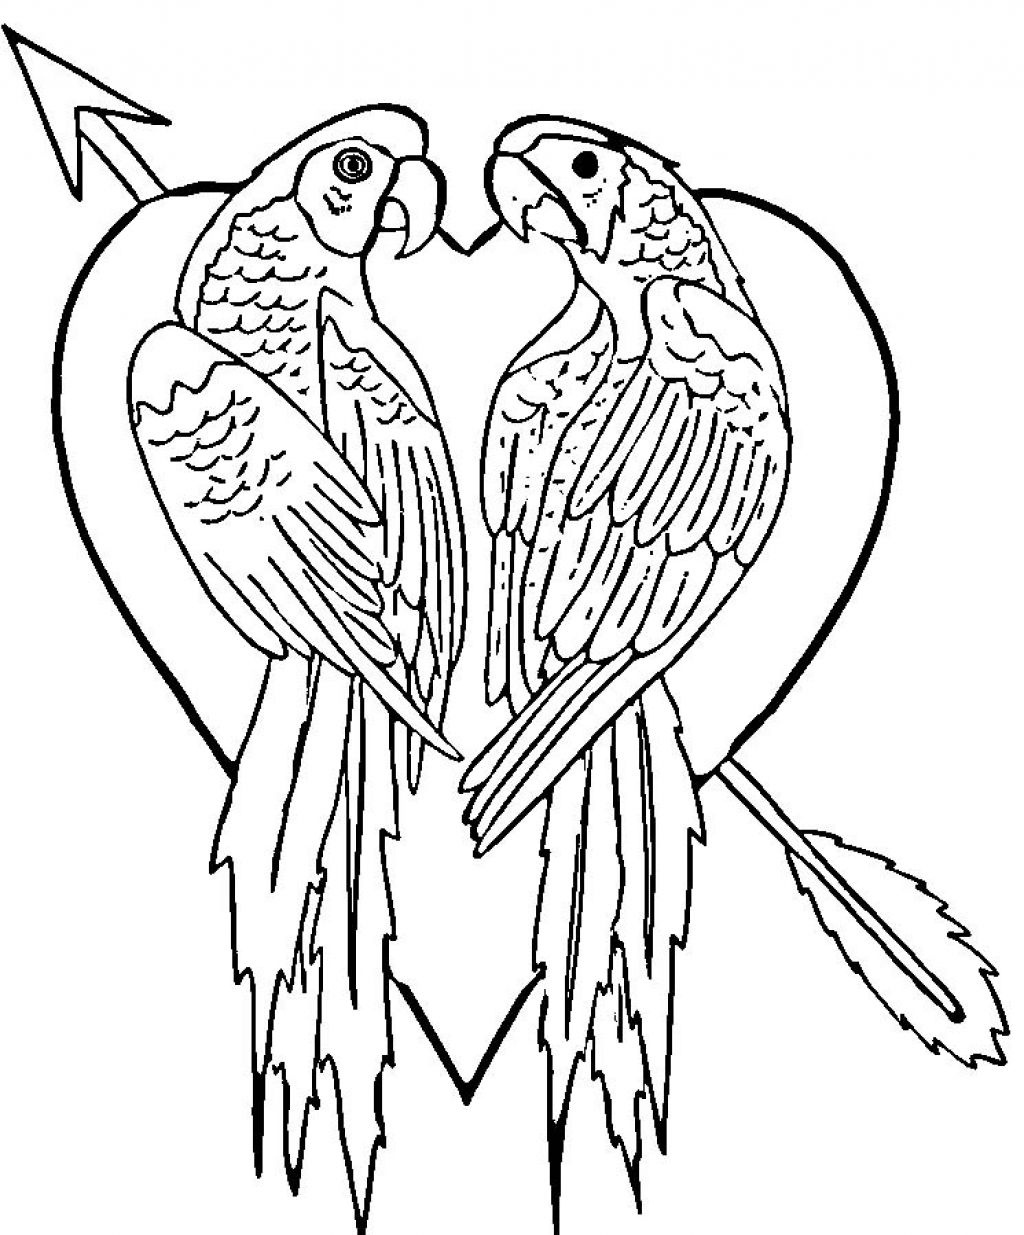 Free Printable Parrot Coloring Pages For Kids - Free Printable Parrot Coloring Pages